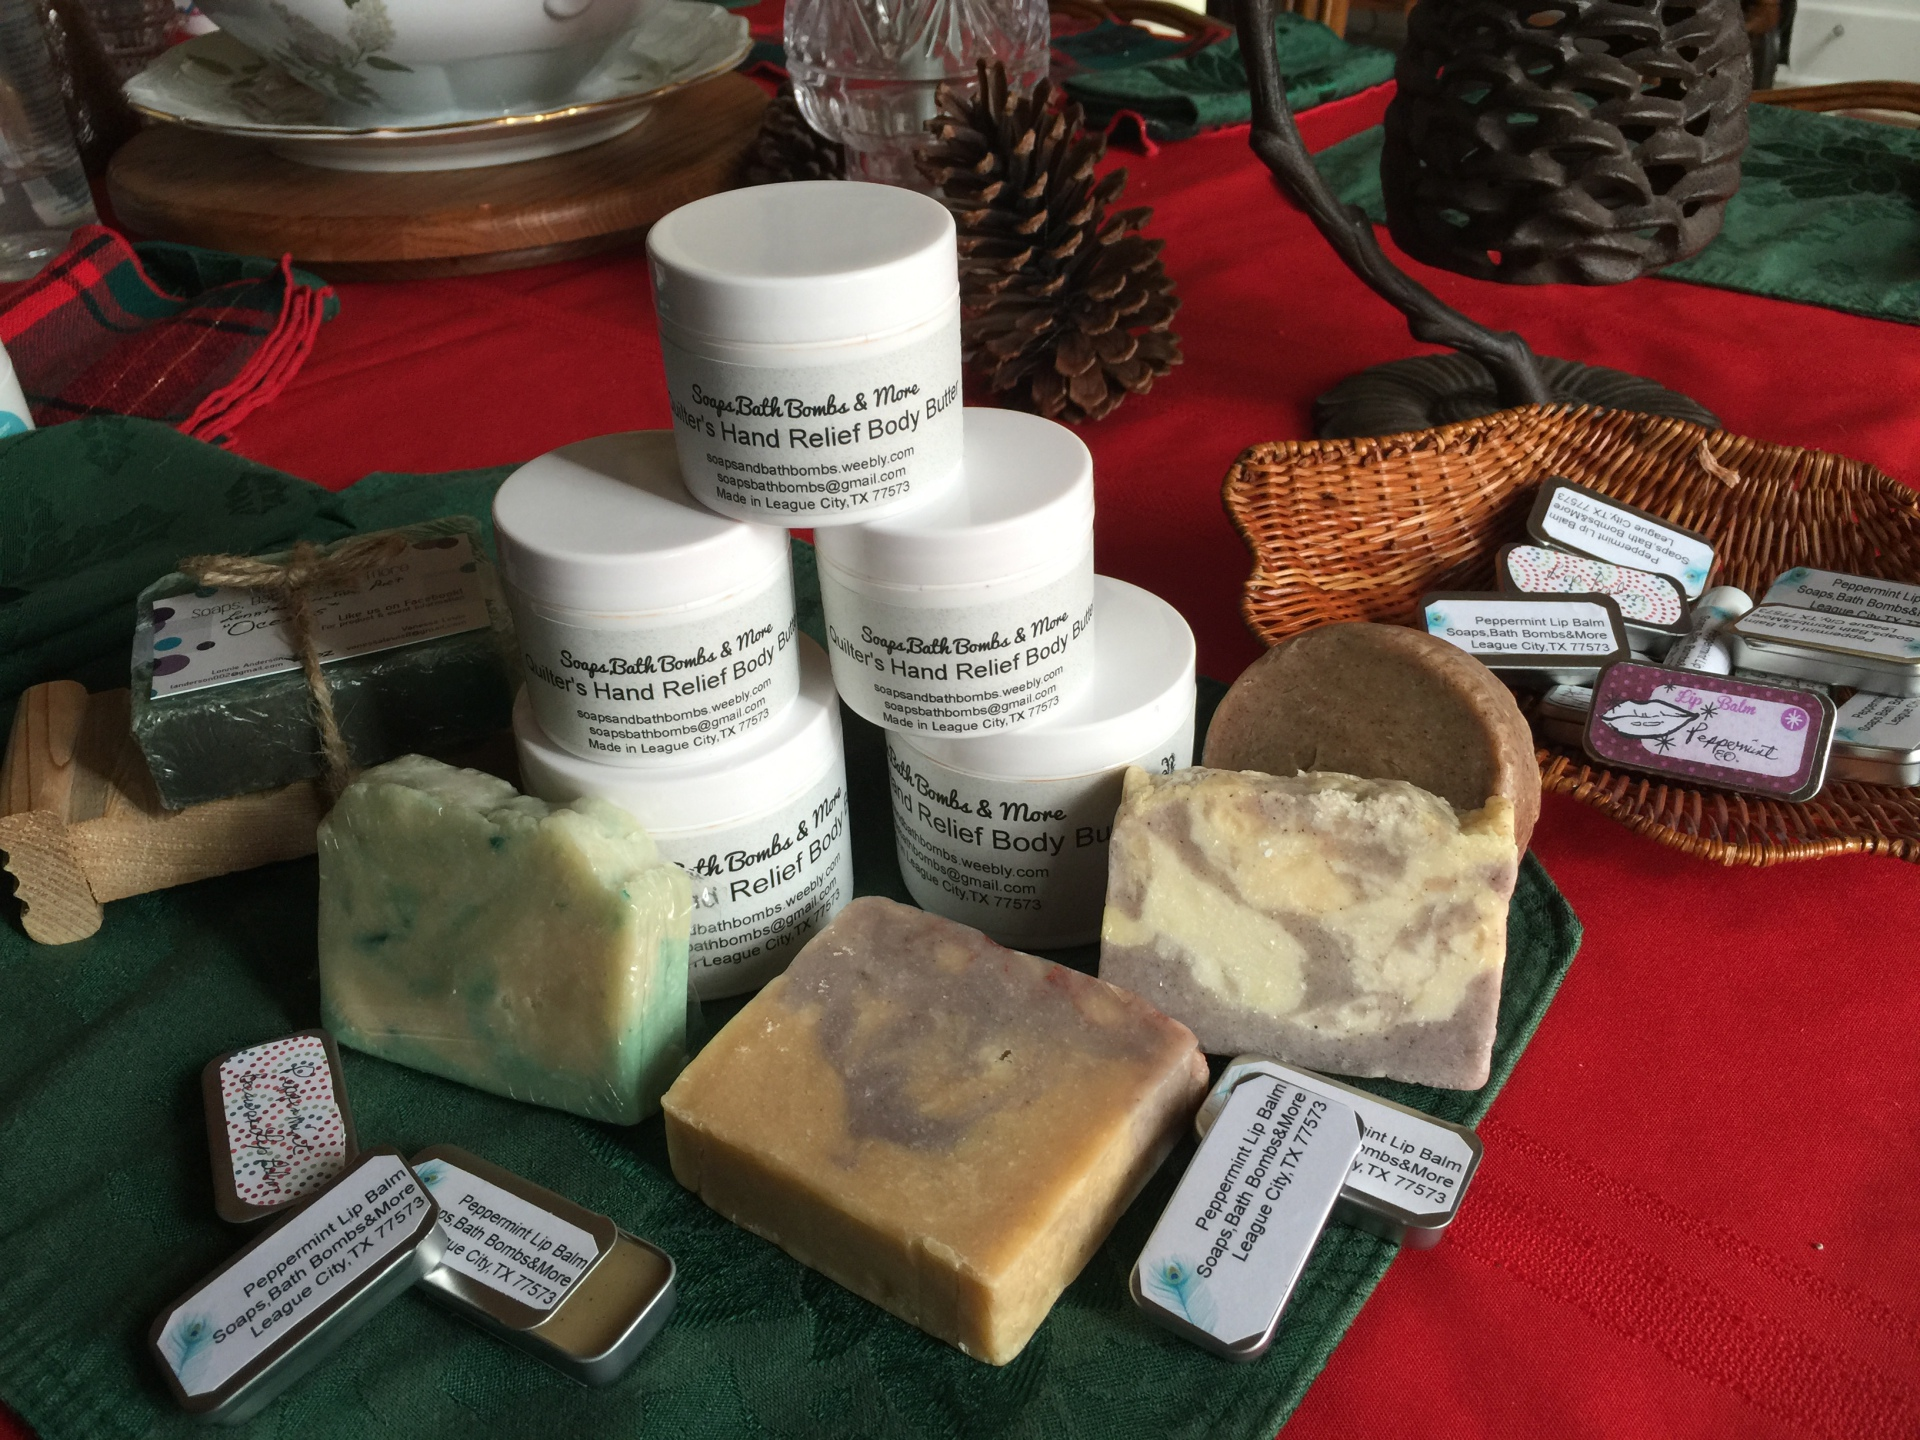 Soaps, Body Butters and Lip Balms